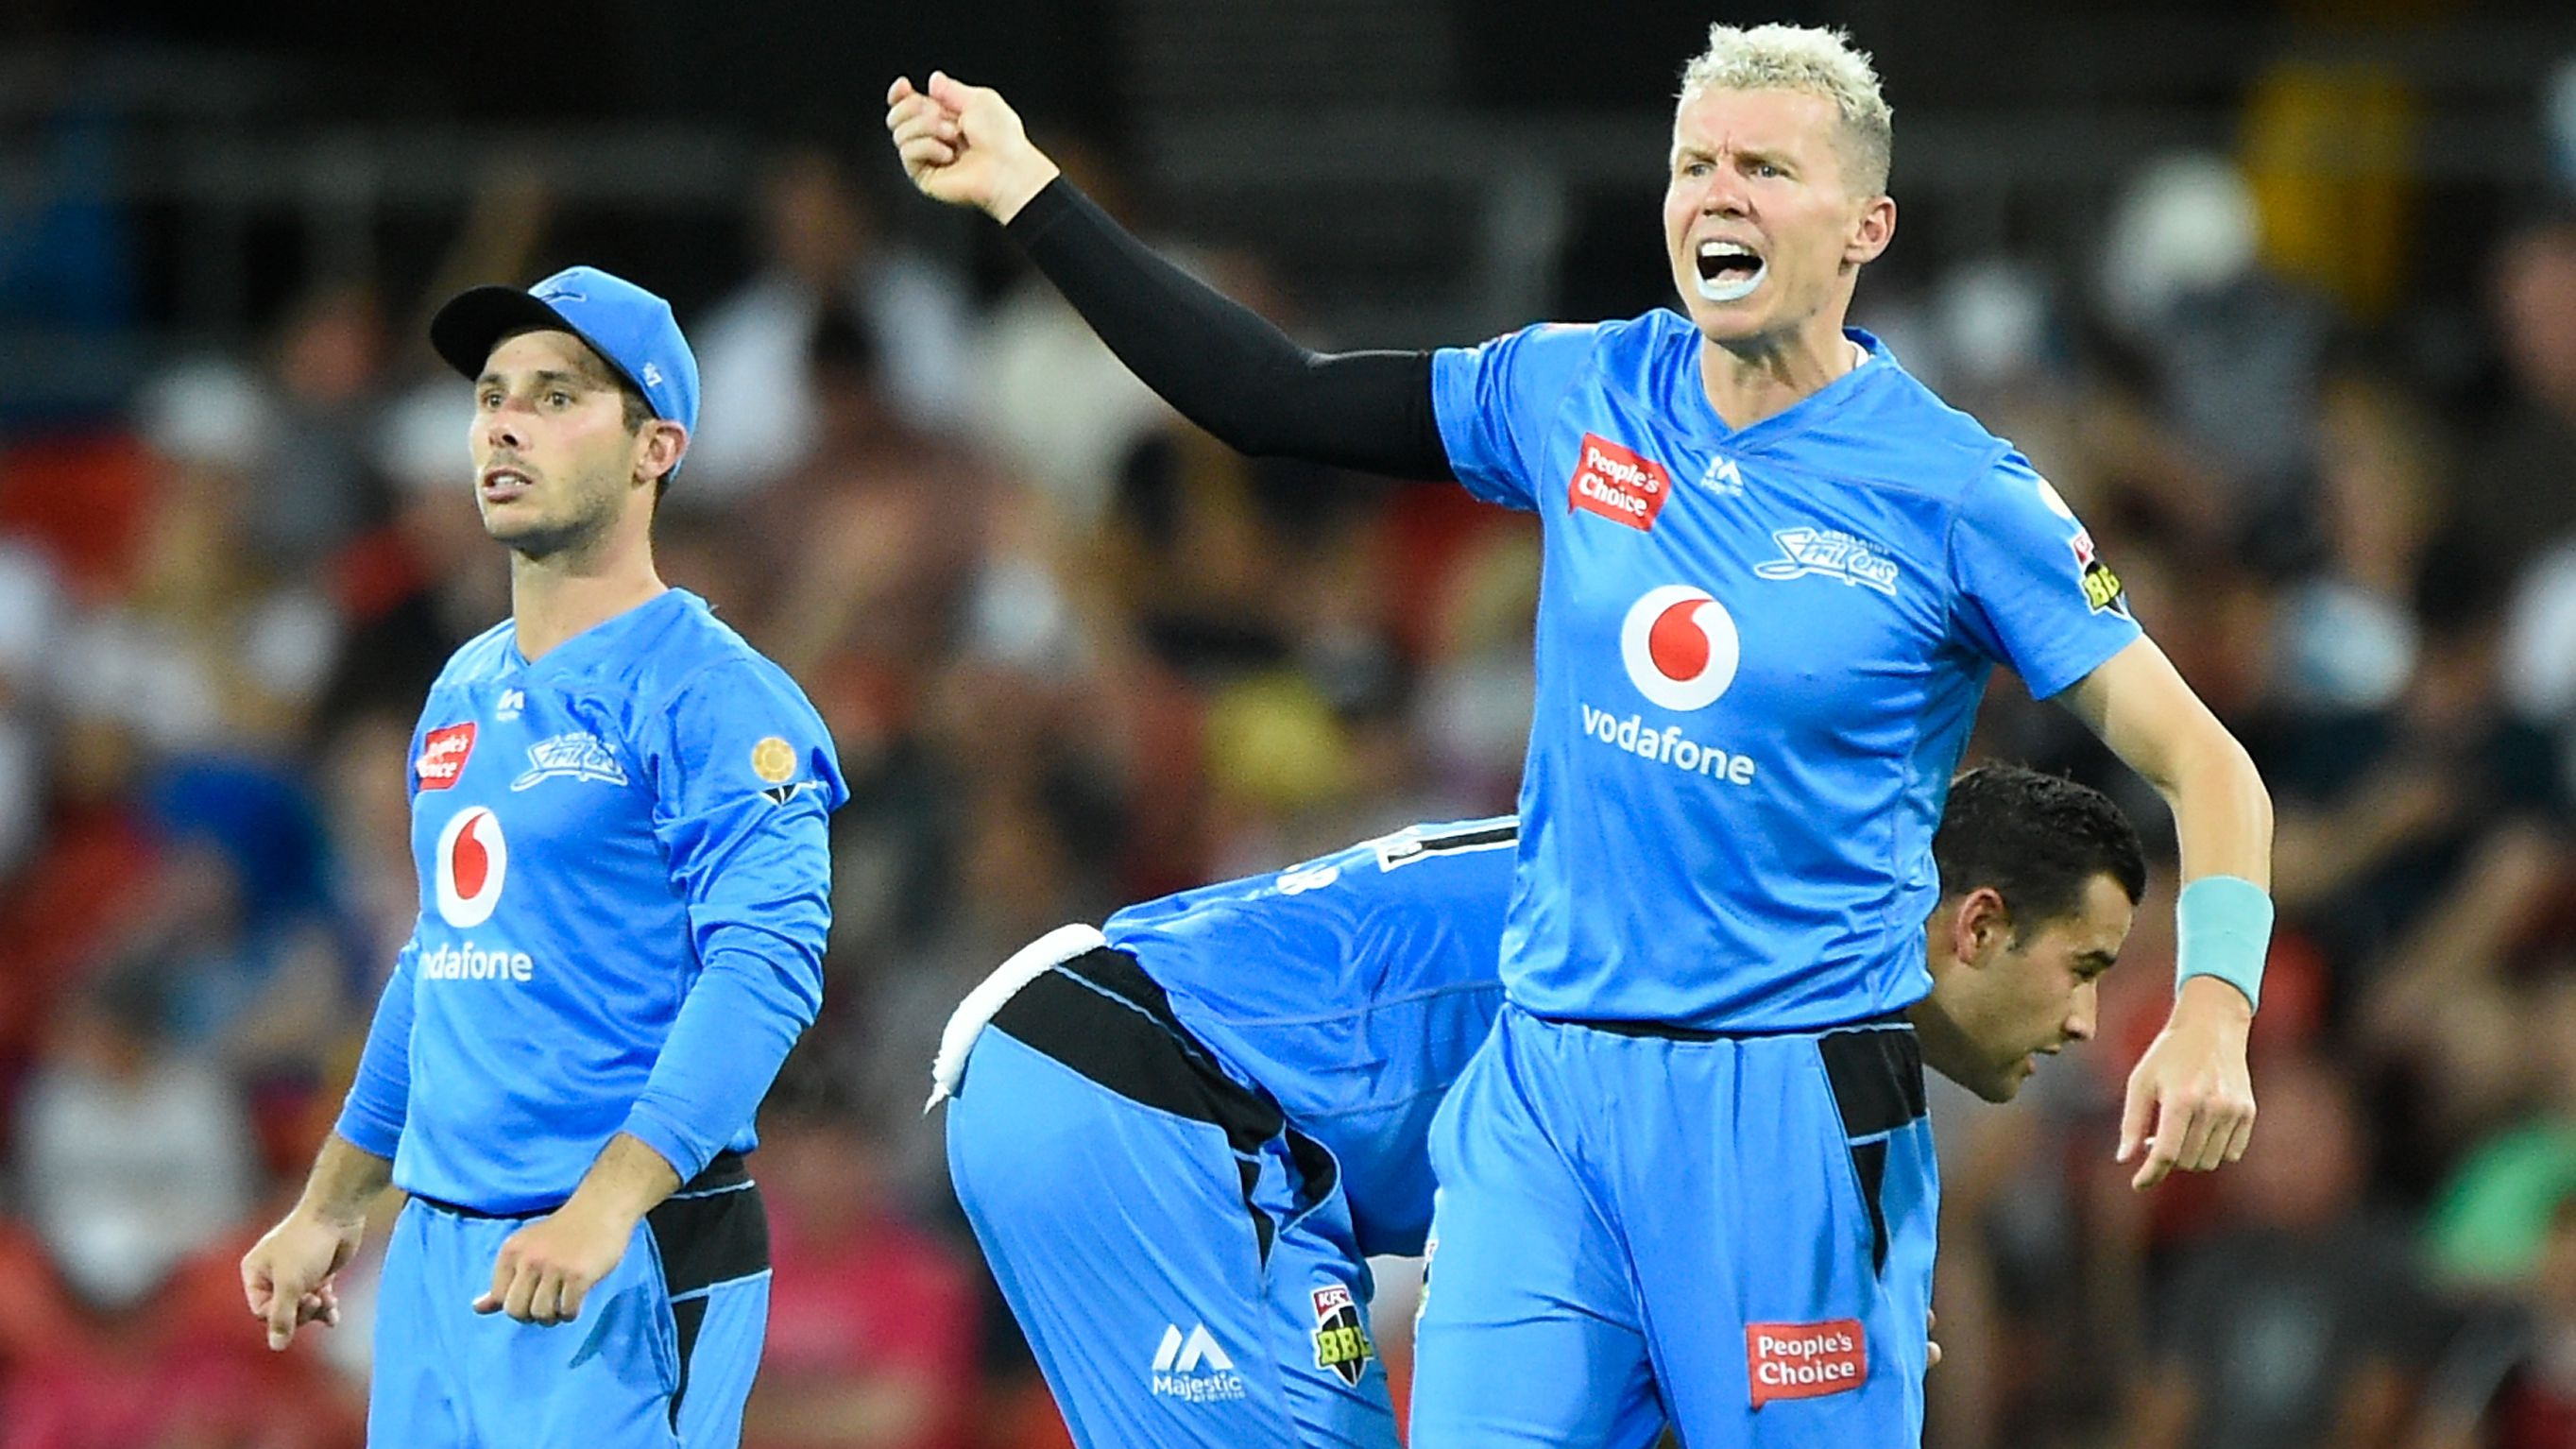 Peter Siddle of the Strikers gestures during the Big Bash League match.